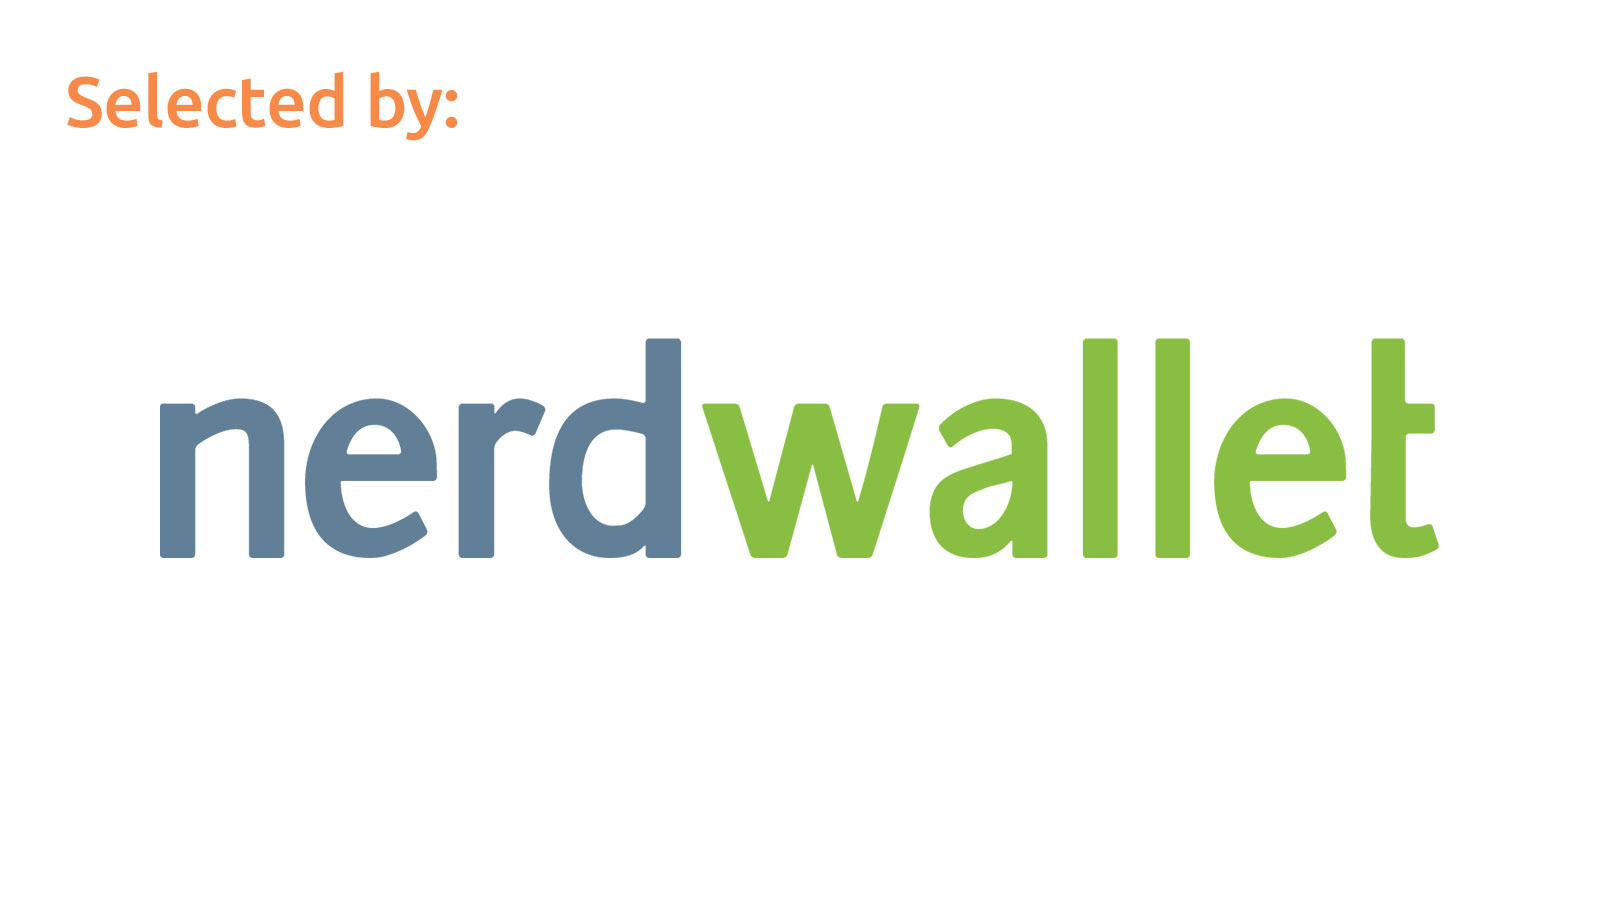 ROCK Selected as one of NerdWallet's Top 4 Youth ...